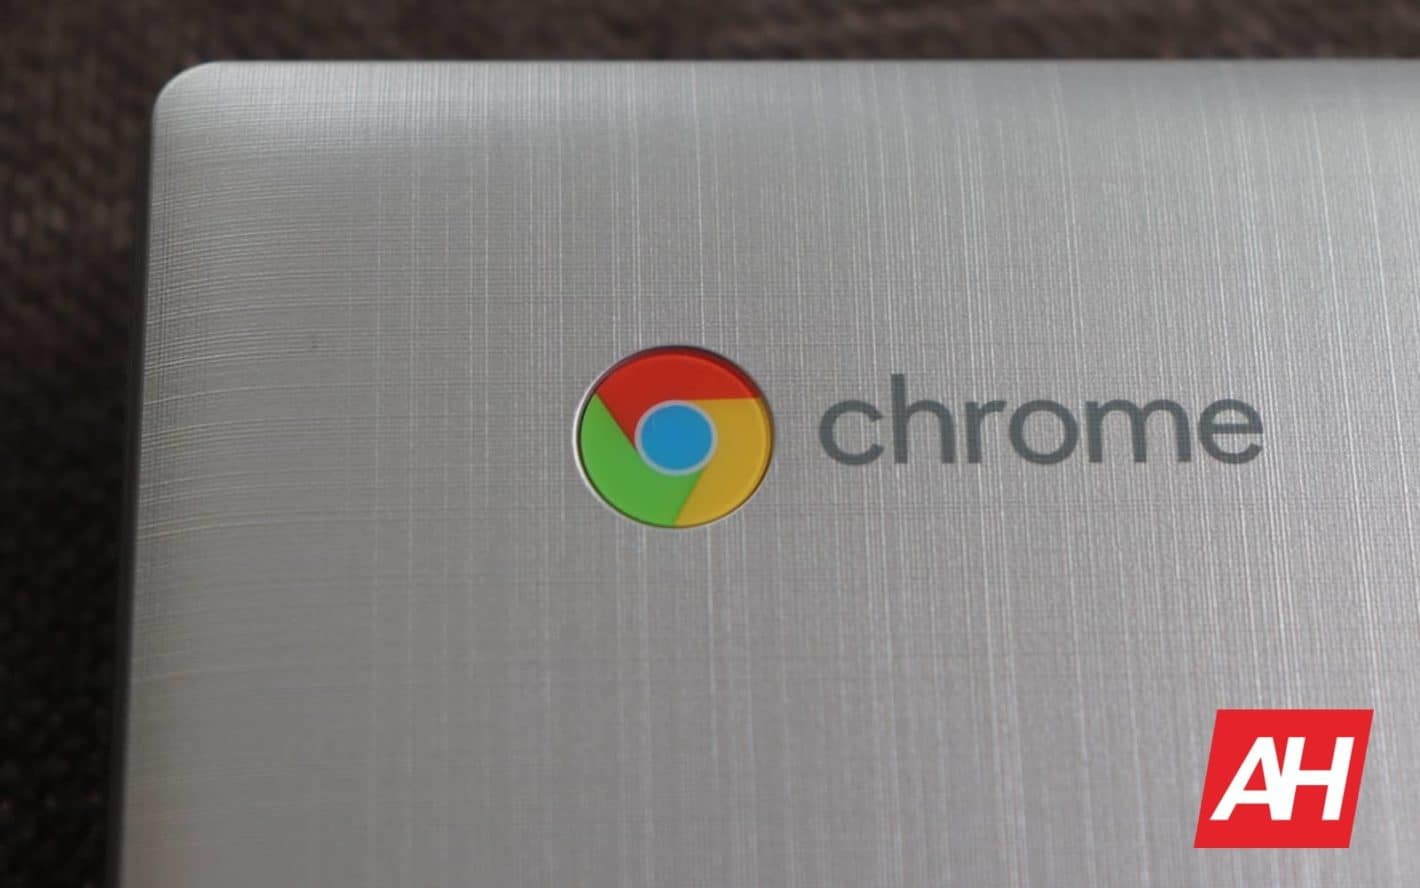 Massive spying on Google's Chrome users shows new security weakness